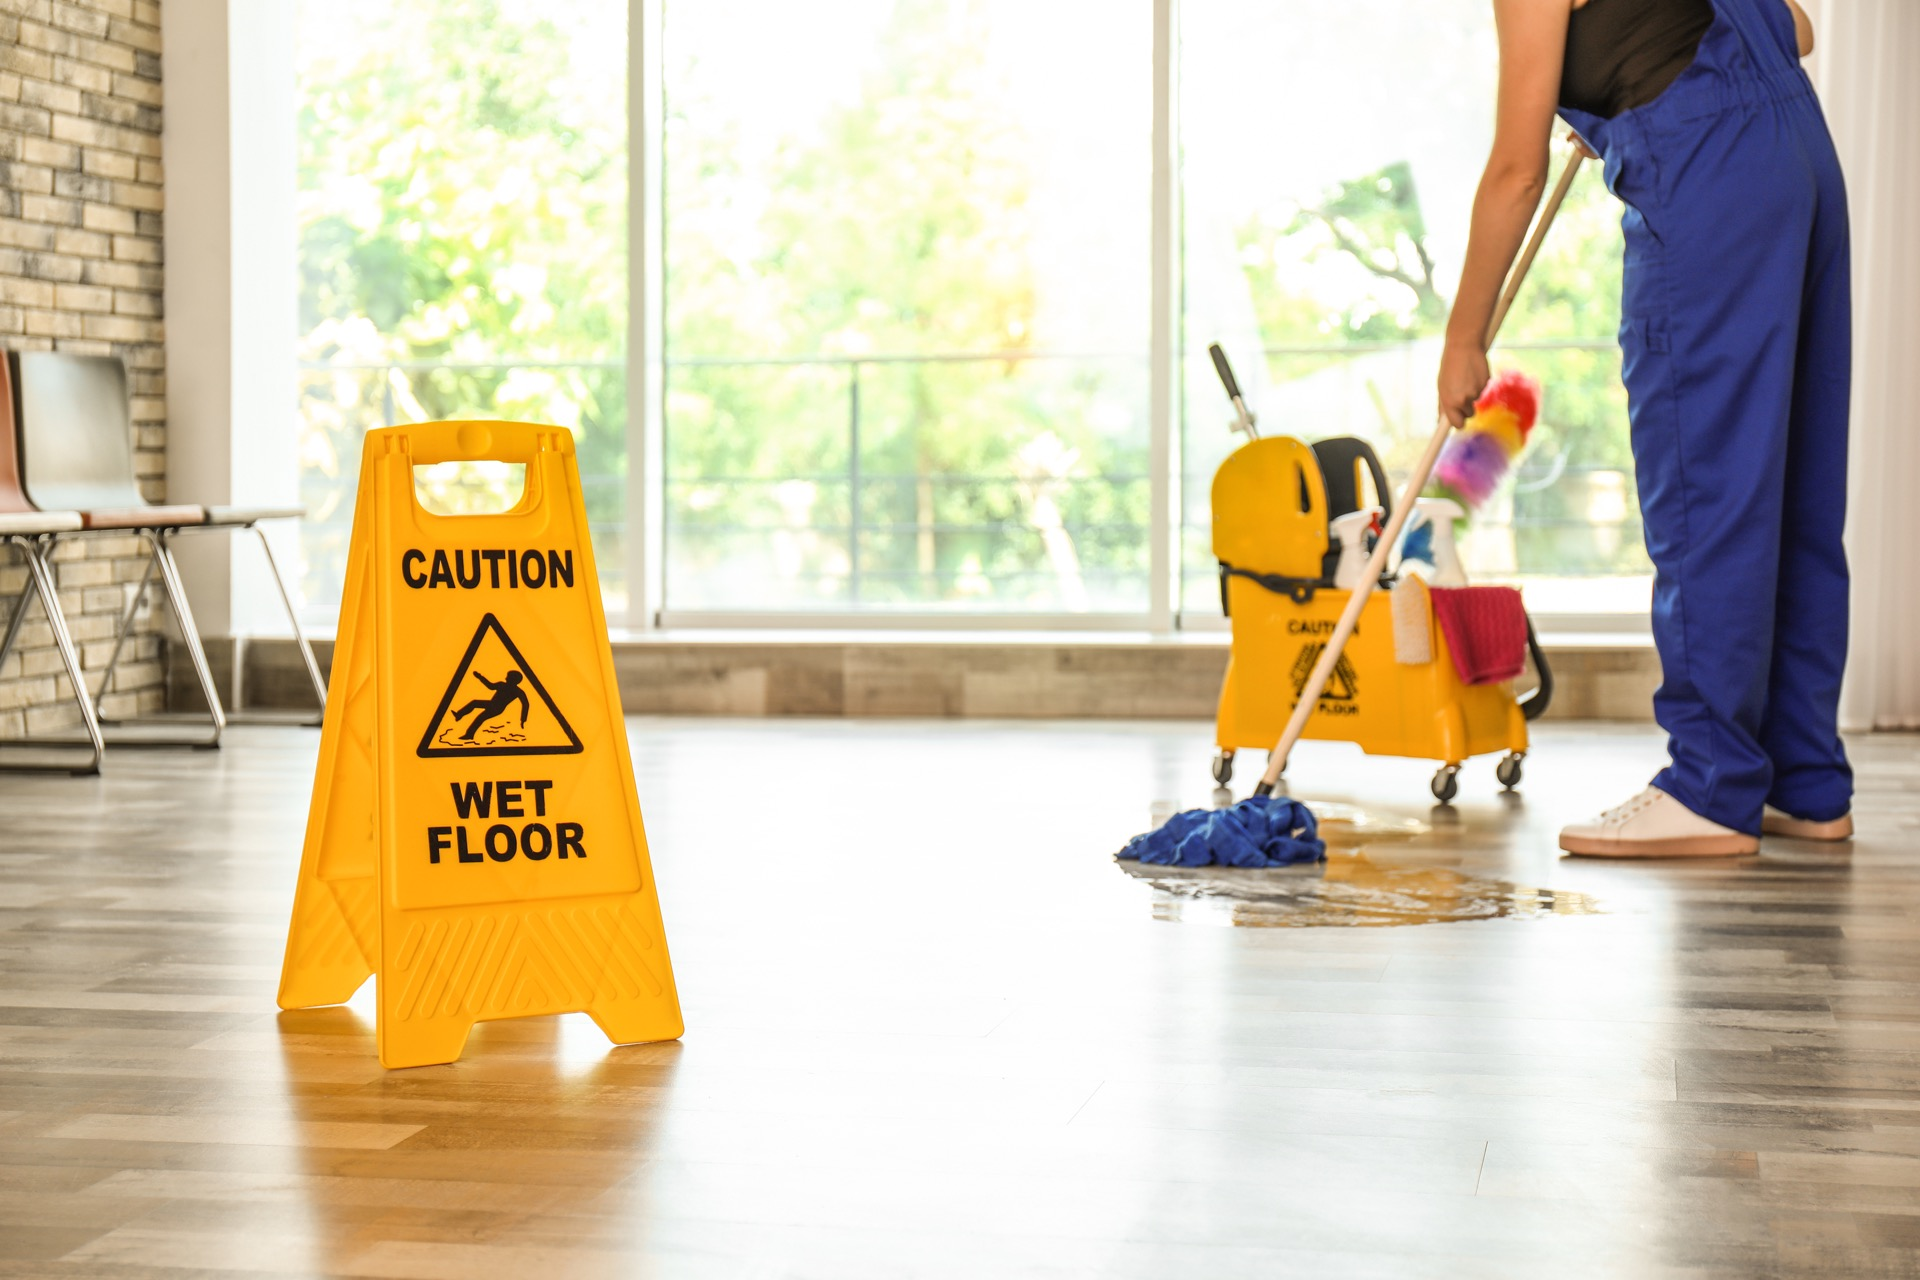 Commercial cleaning being performed at a workplace